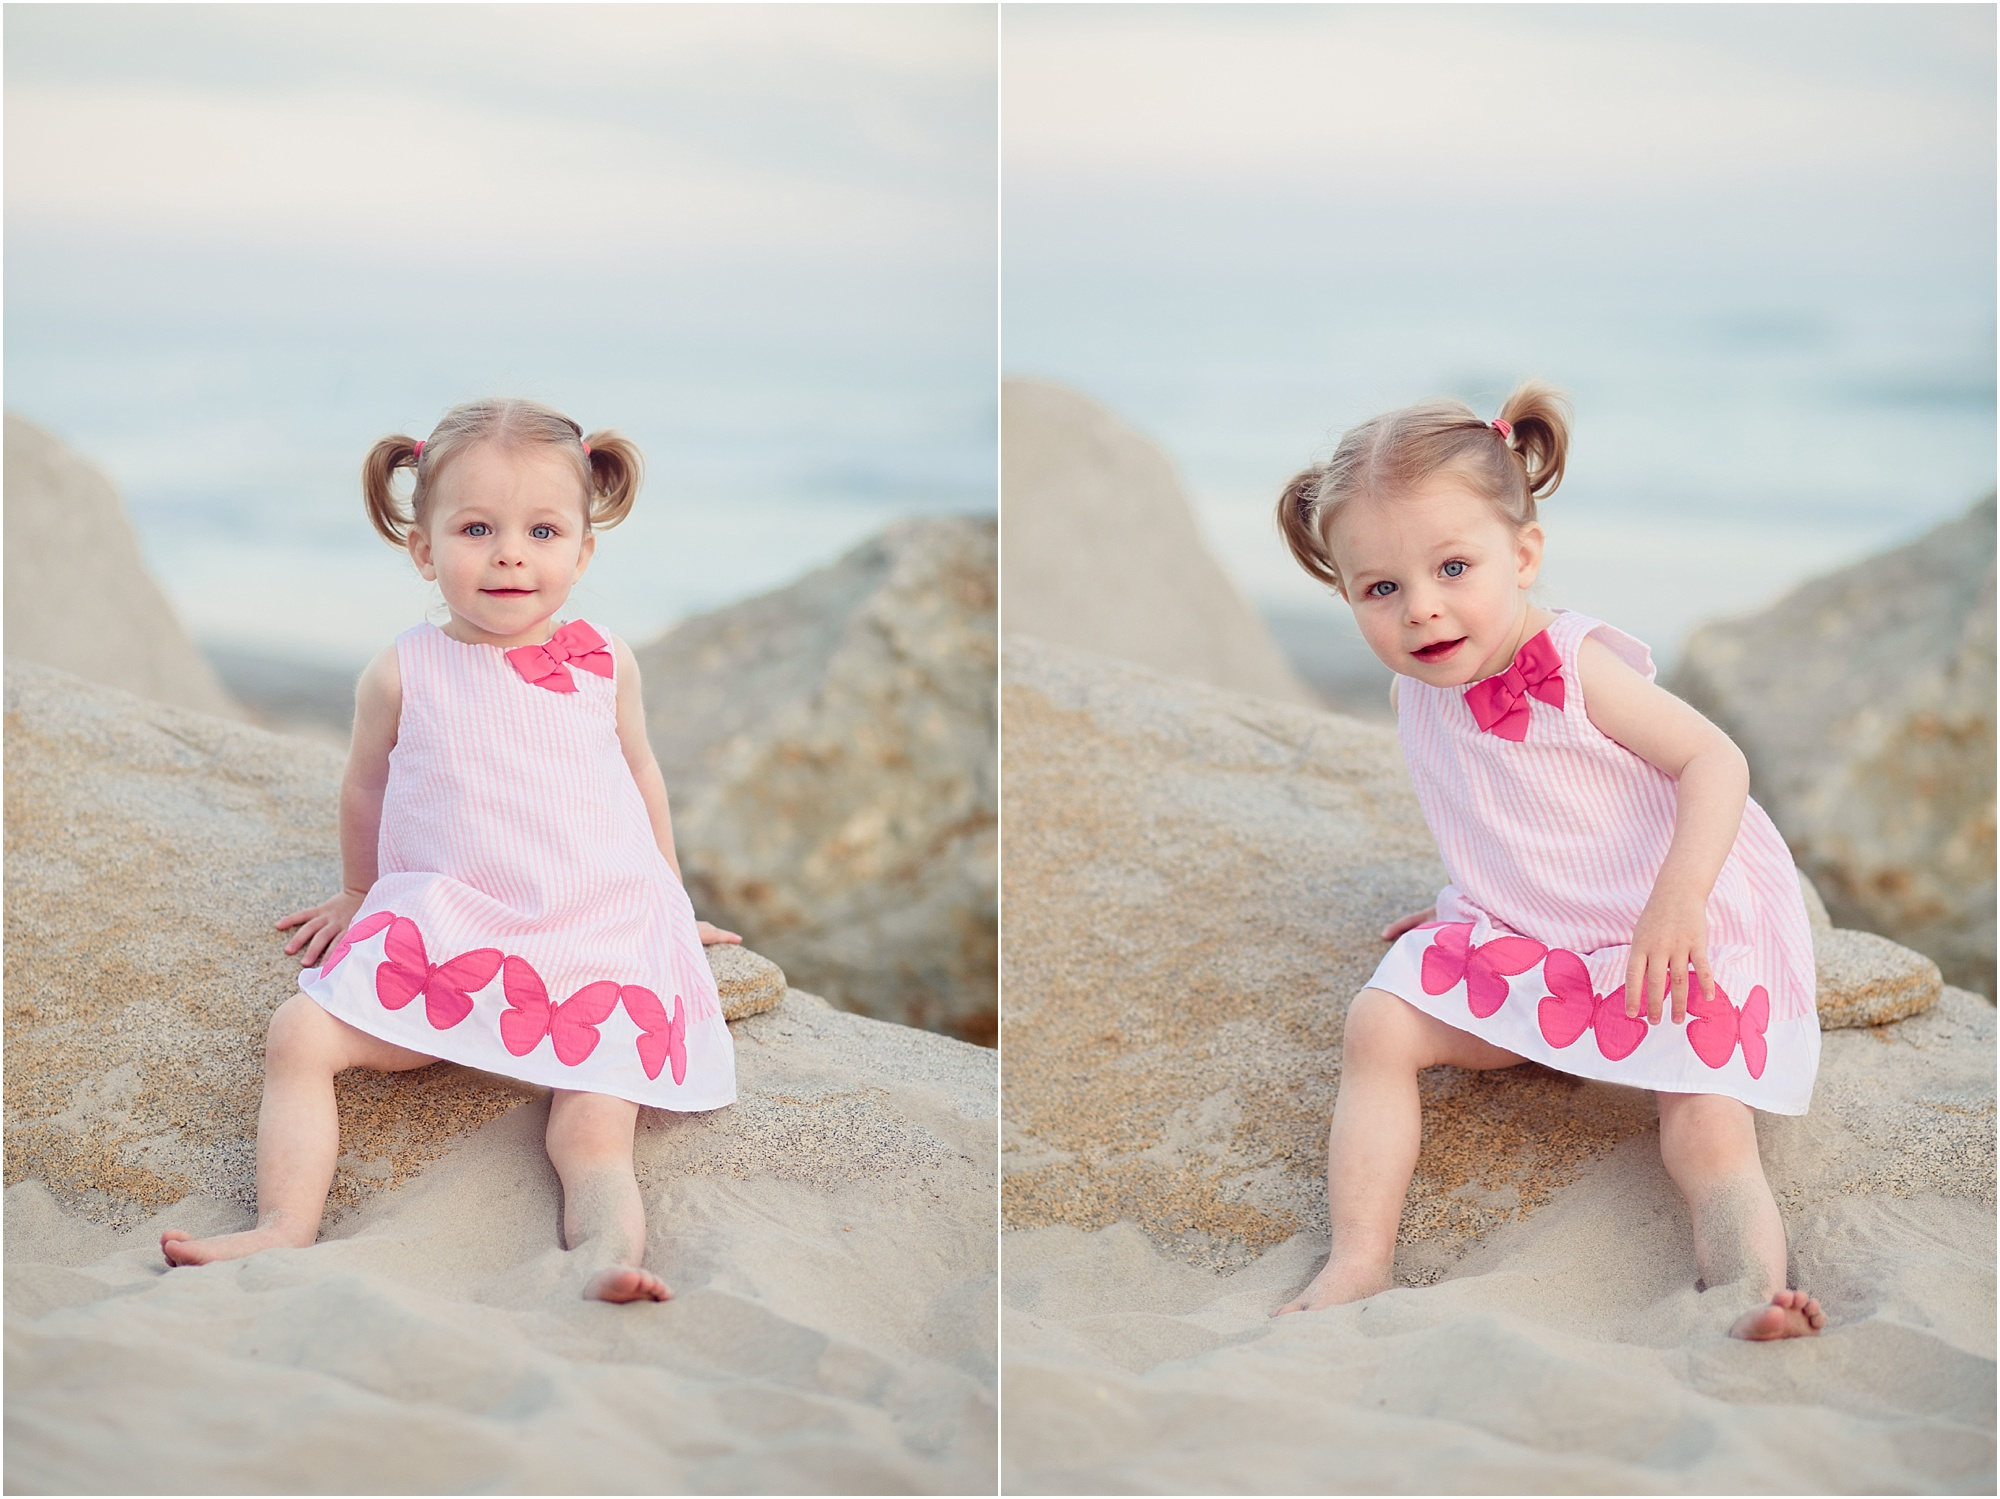 Hotel del Coronado Beach Photography | Family Portraits on the Beach